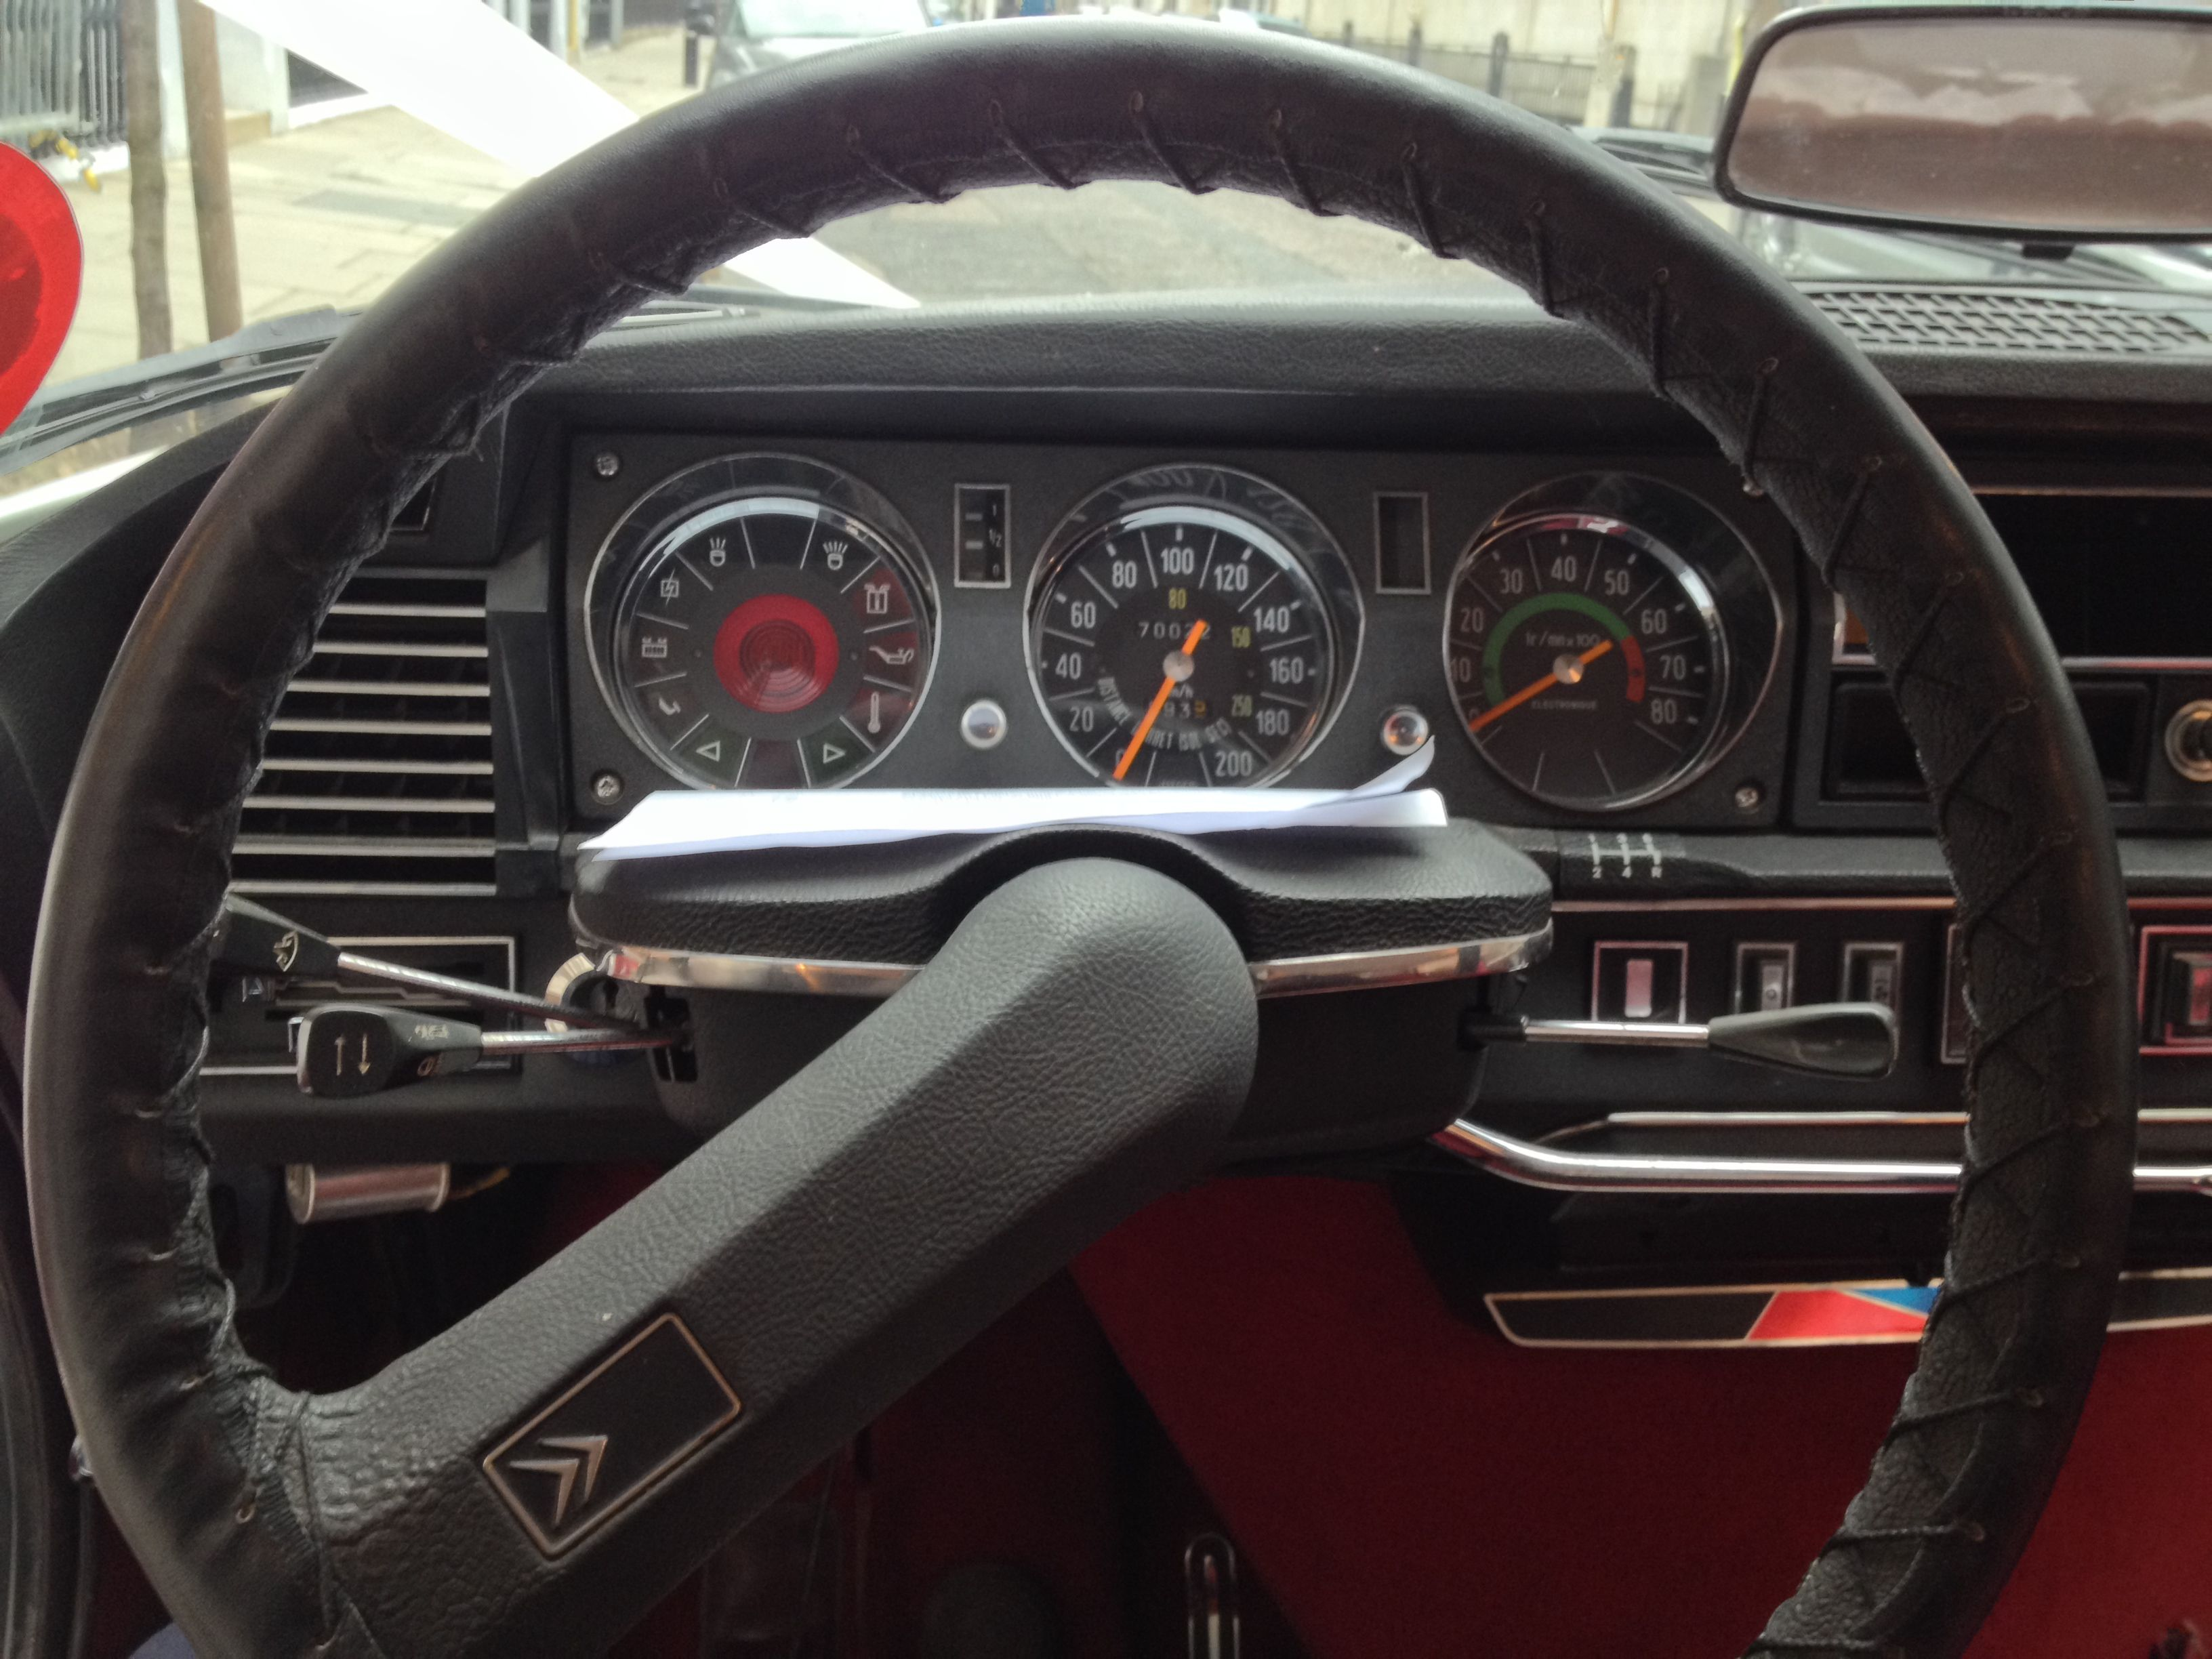 Look at that original interior.  if I could bottle the smell from inside this 1968 DS I would be a millionaire!